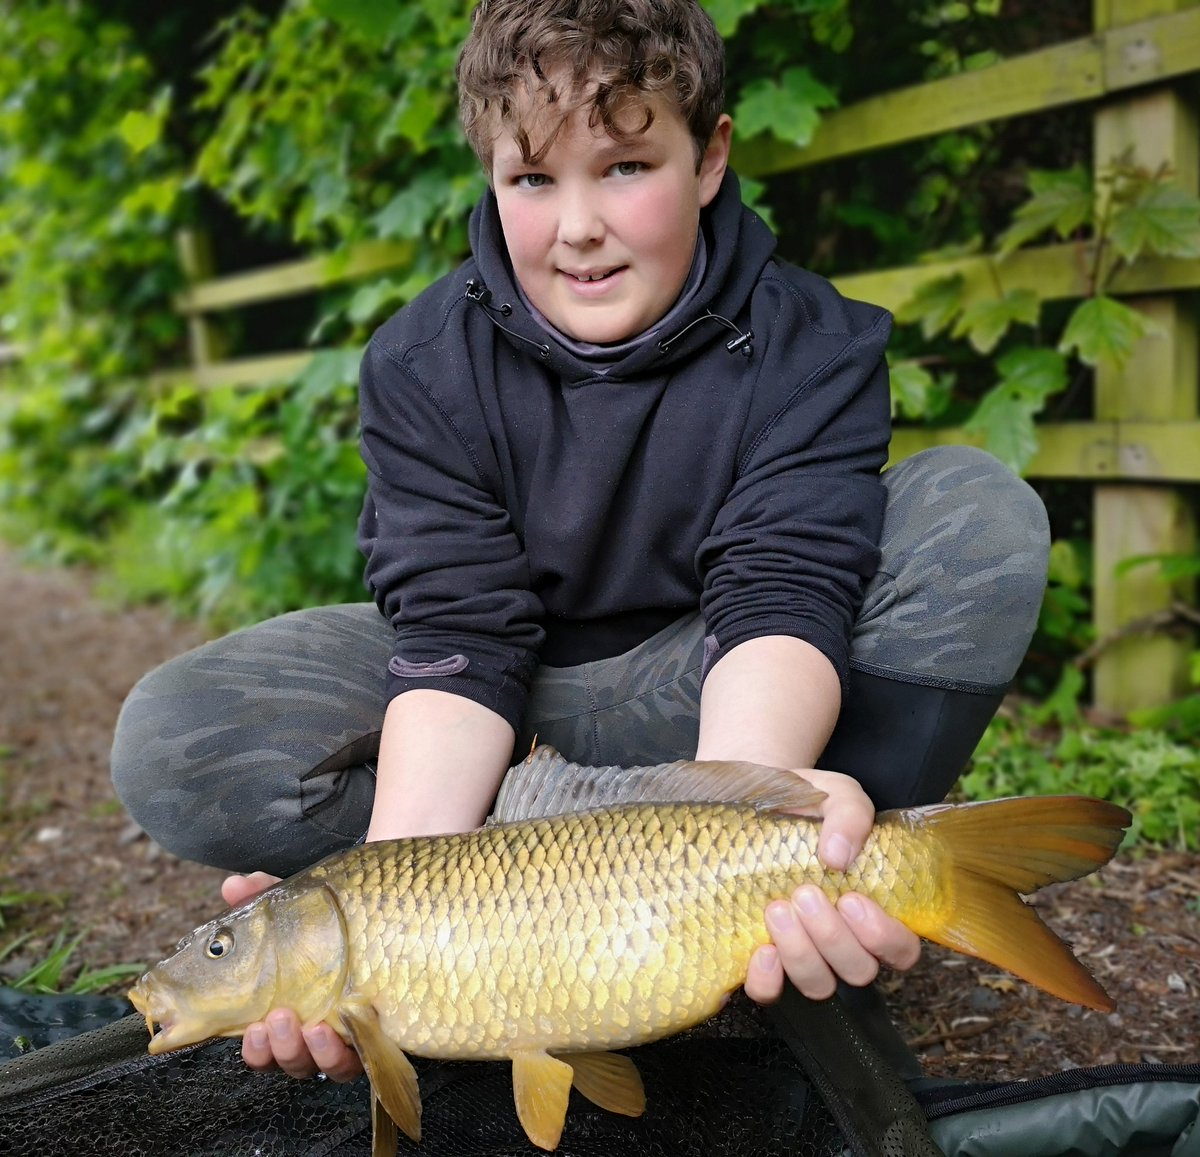 First time my lad tryed #zigs resulted in this 8lb er #carpfishing #fishing #carp #<b>Carpy</b> #<b>